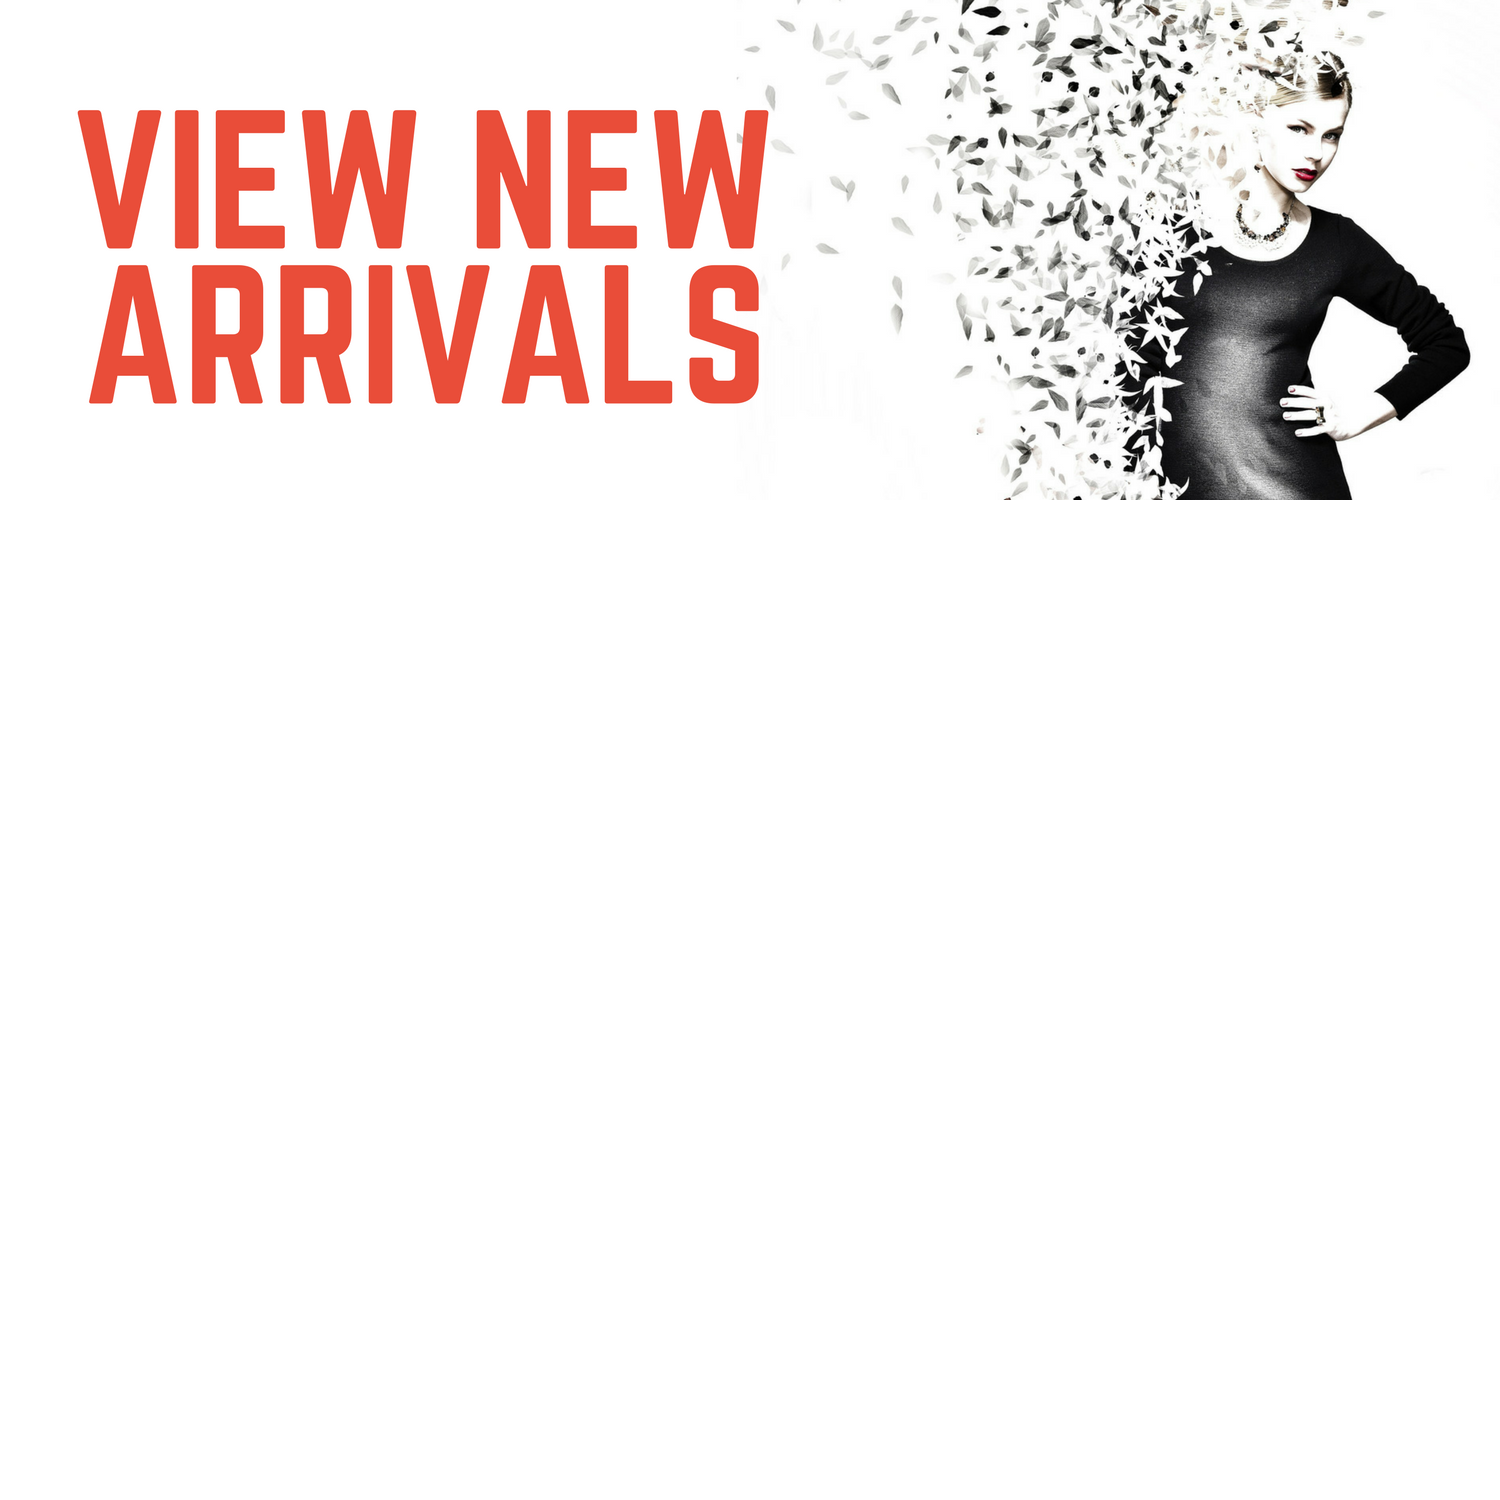 View New Arrivals for Hamilton's Ladies Apparel in Ripon WI and Berlin Wi